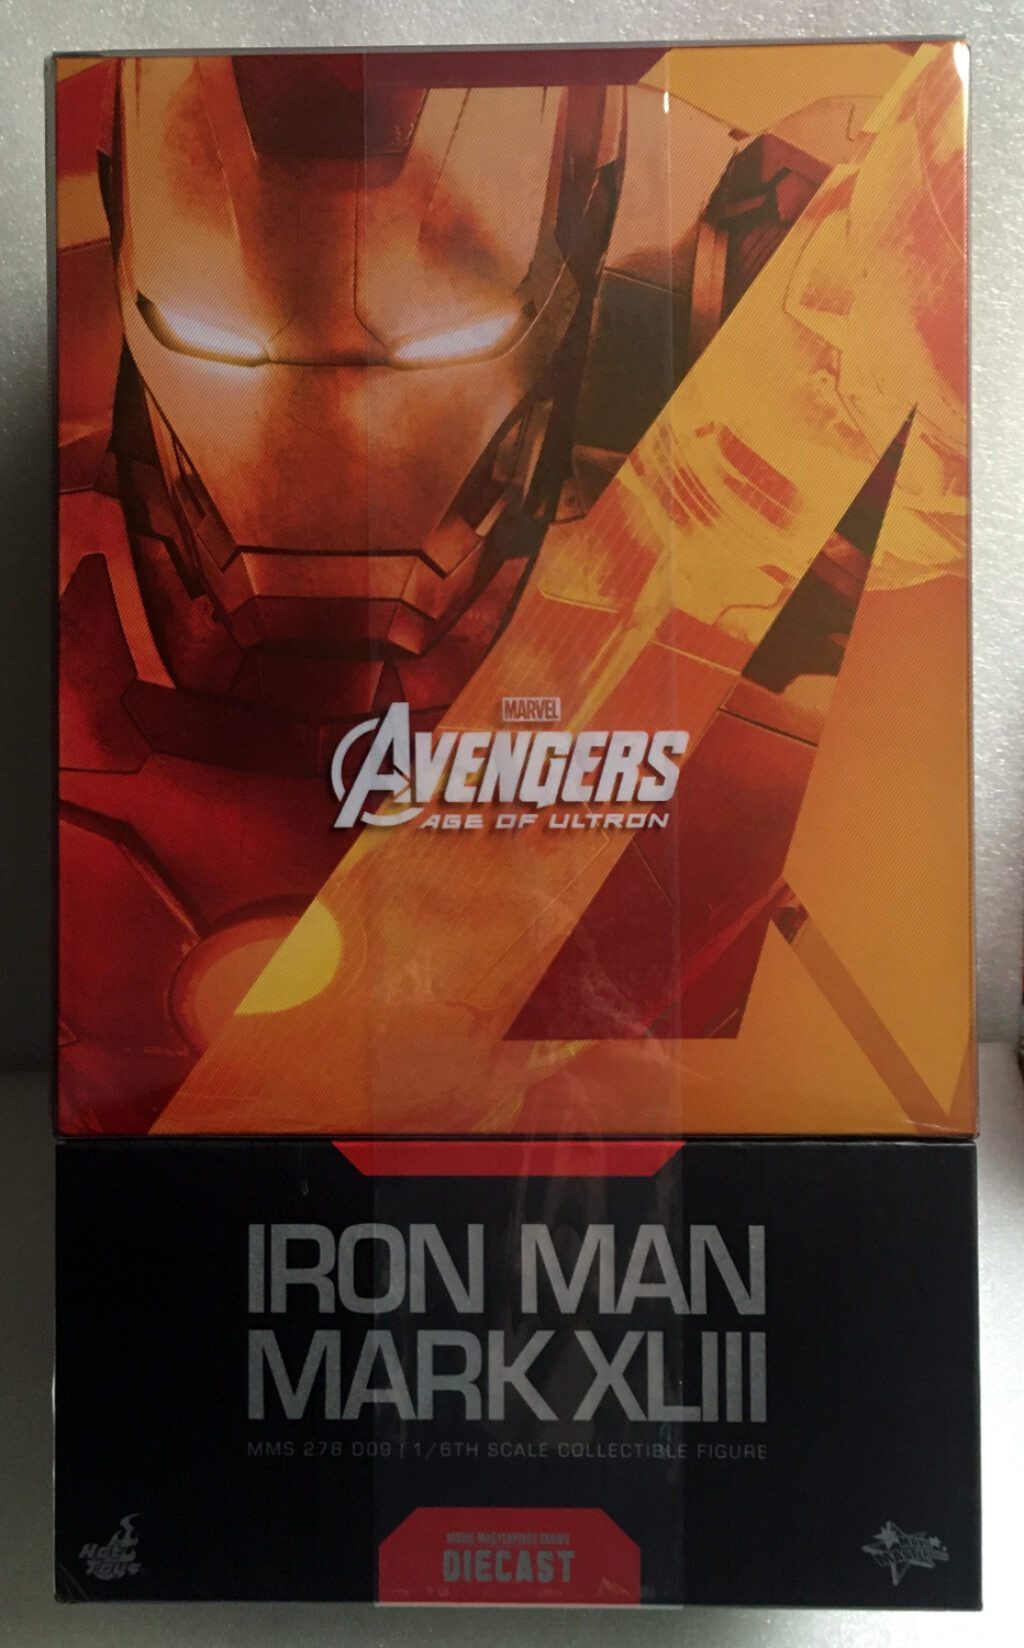 hot toys iron man mark xliii 1:6 scale figure - original d09 issue 1